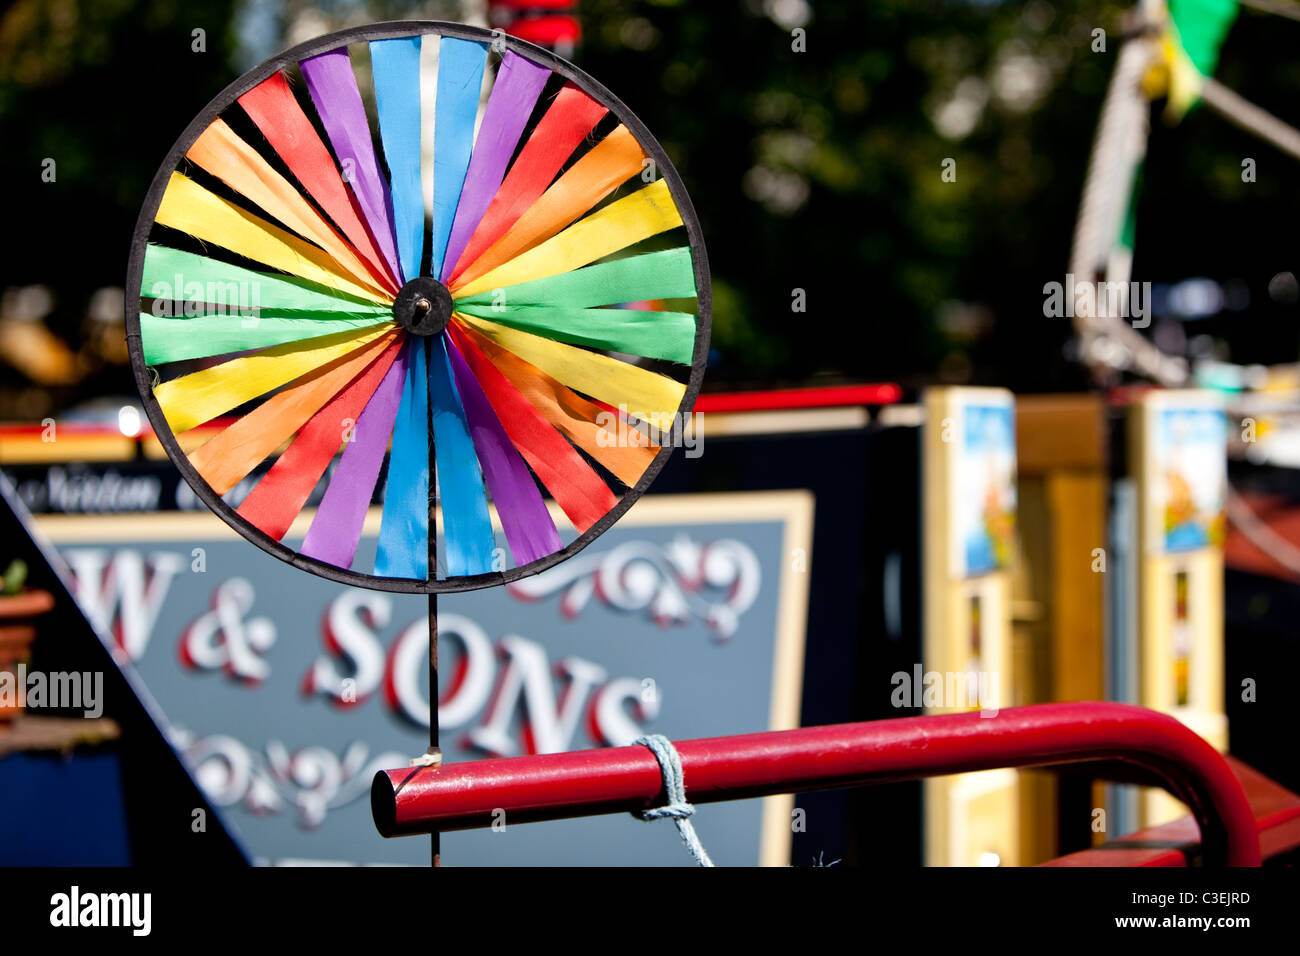 Wind spinner on a canal narrow boat, - Stock Image